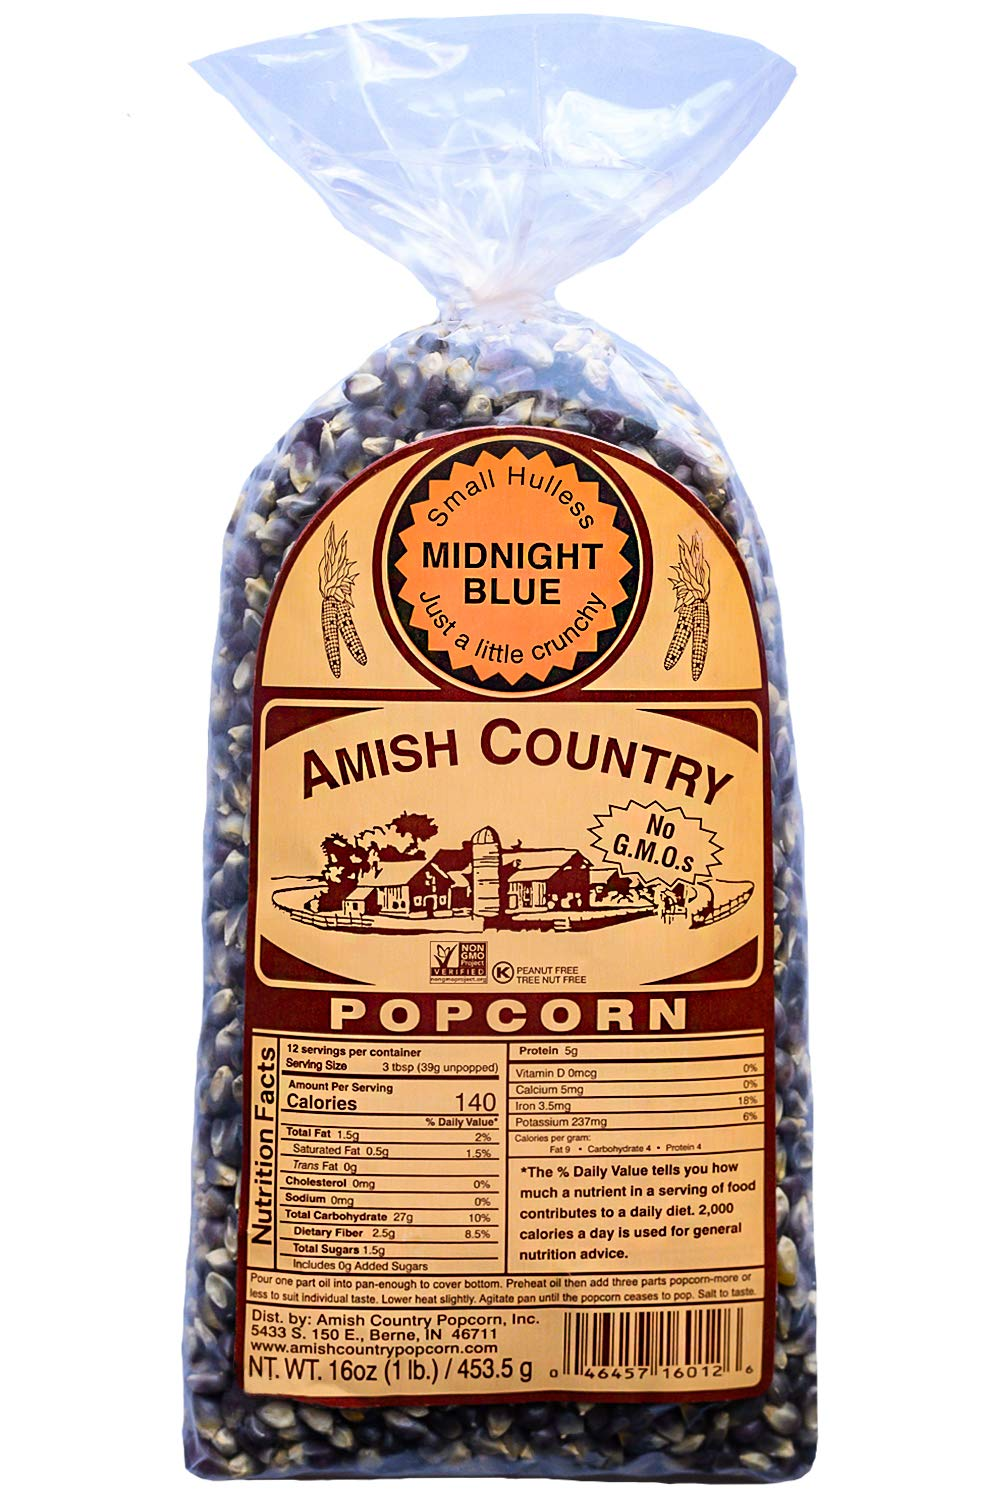 Amish Country Popcorn - Midnight Blue (1 Pound) Premium Kernels - Old Fashioned, Non GMO, Gluten Free - with Recipe Guide by Amish Country Popcorn